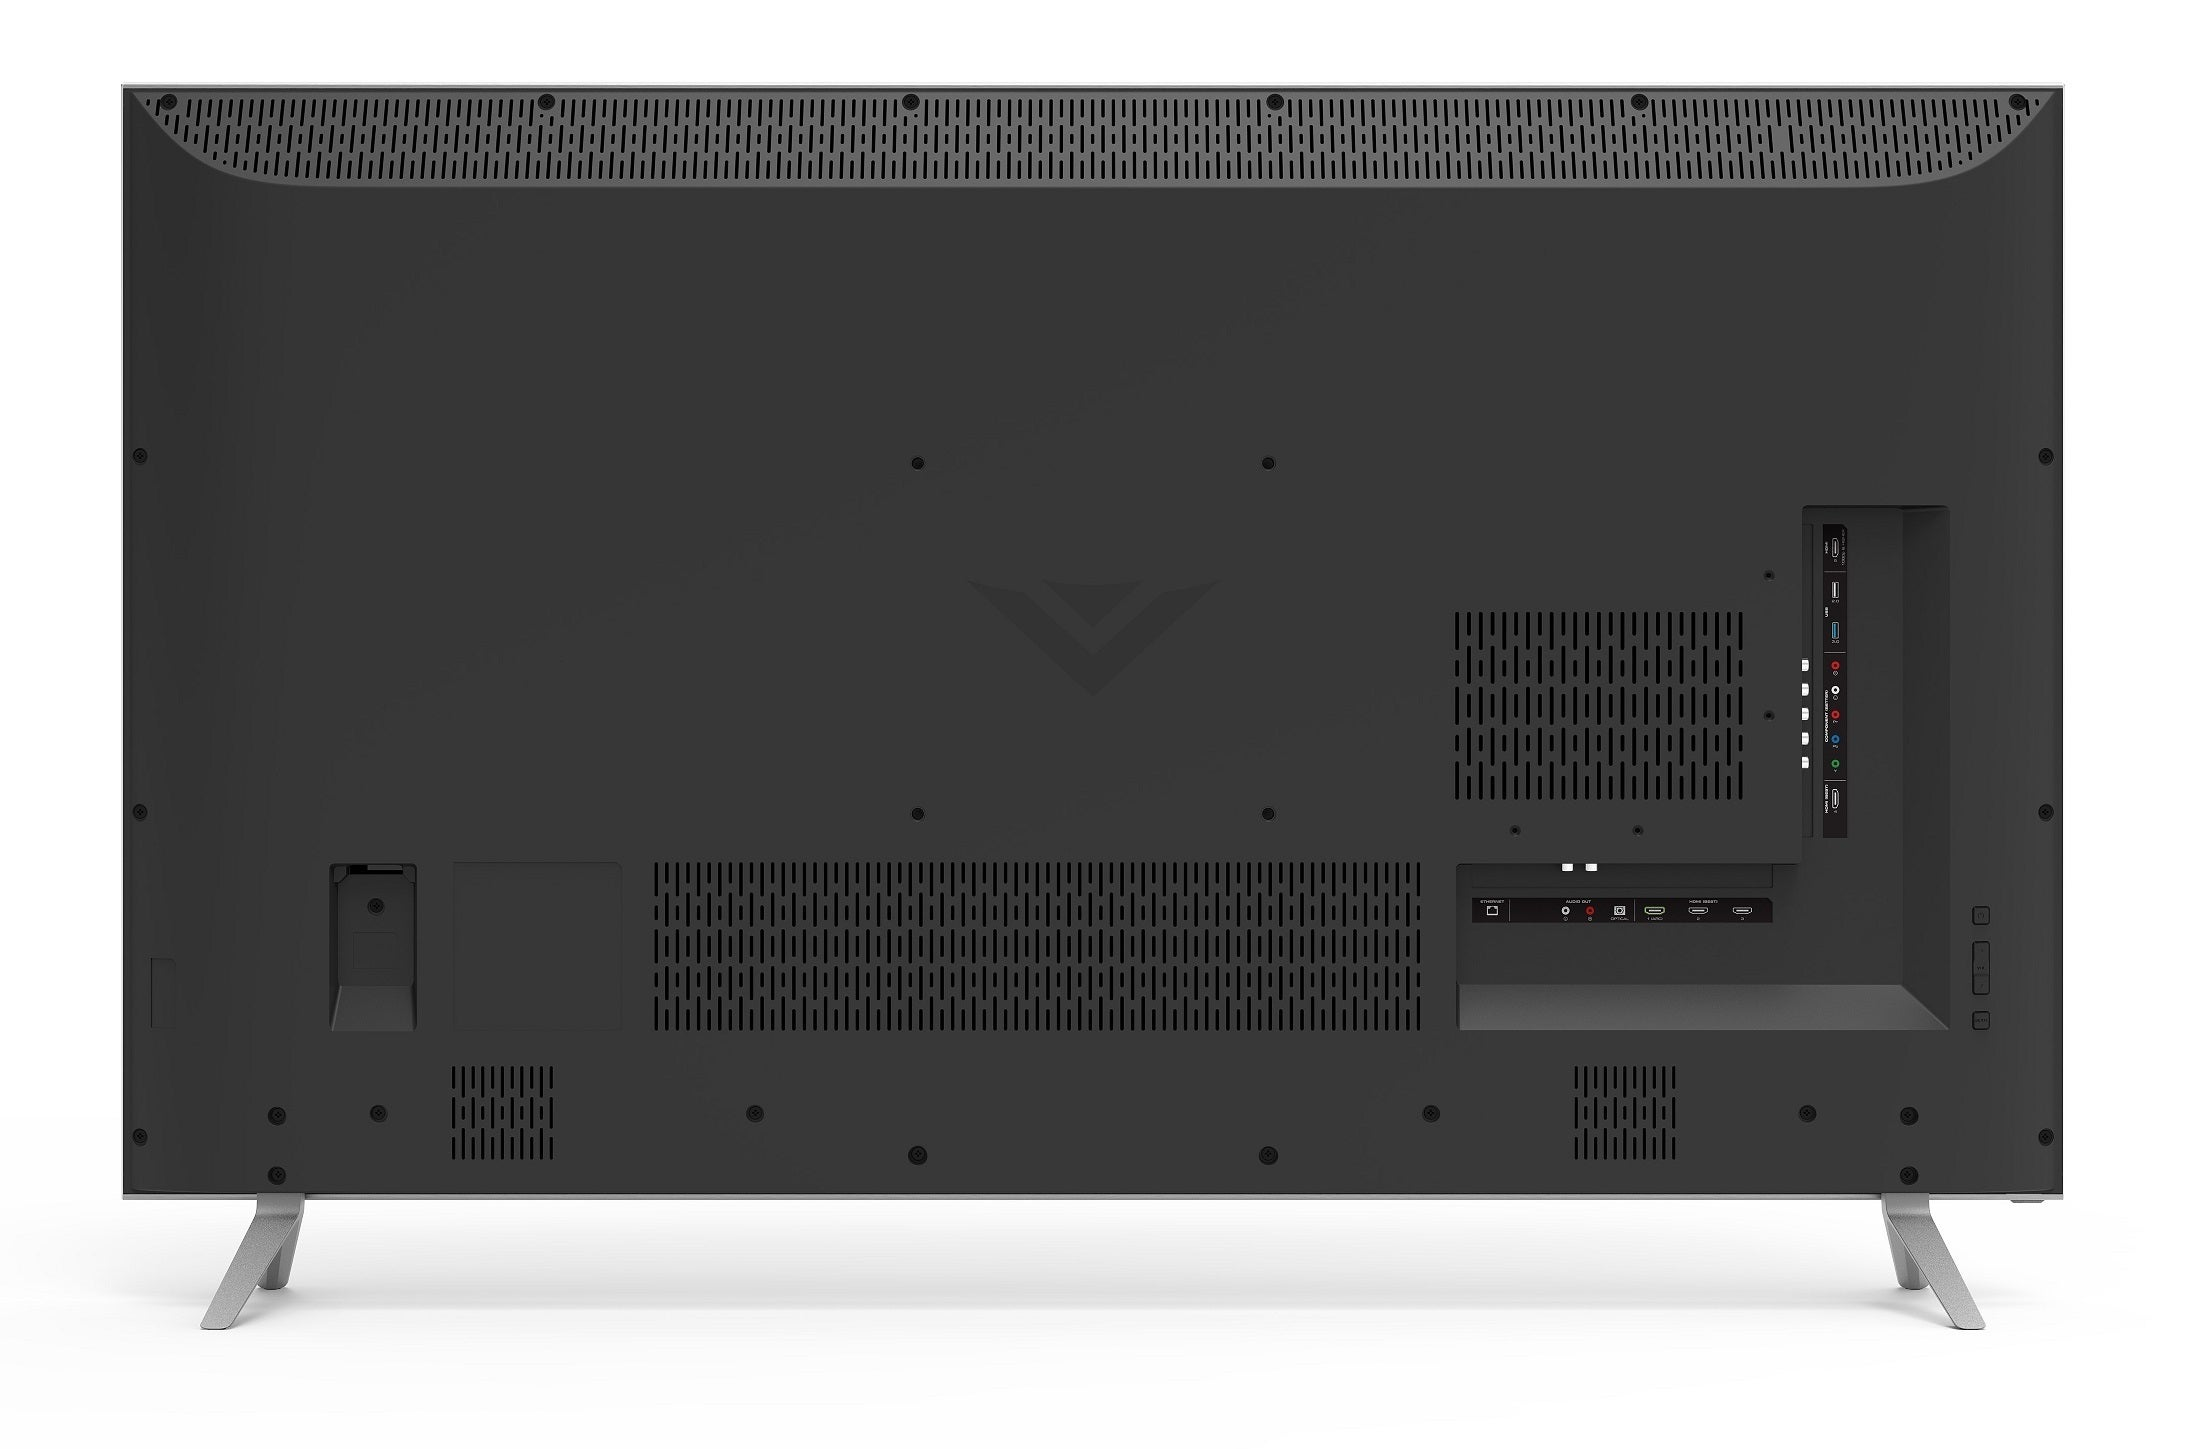 vizio p series 2016 manual